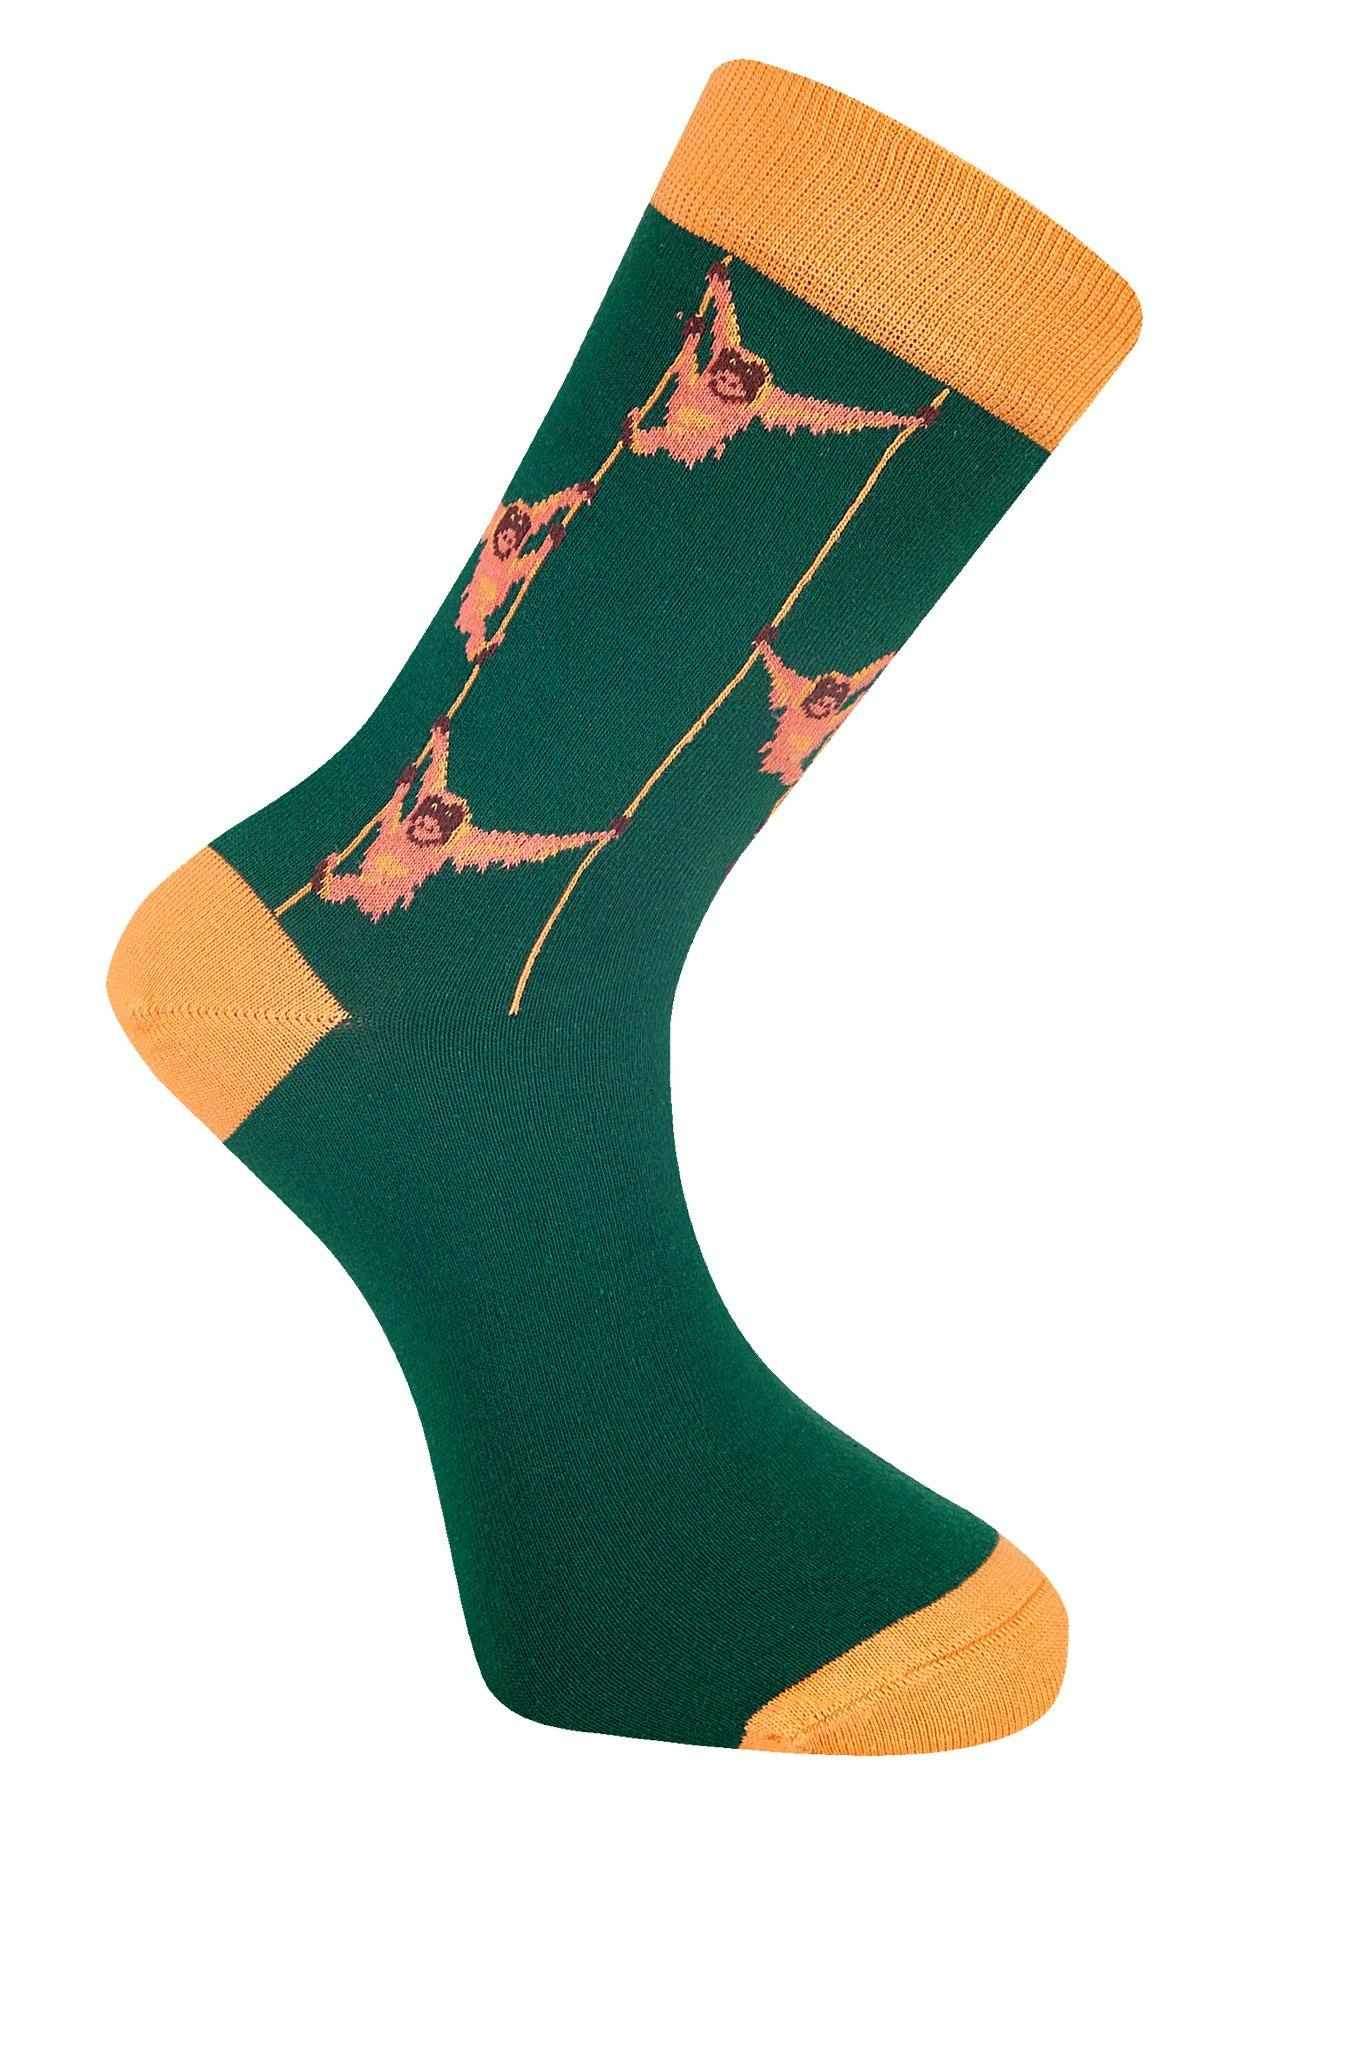 SOS Emerald Organic Cotton Socks - Komodo Fashion